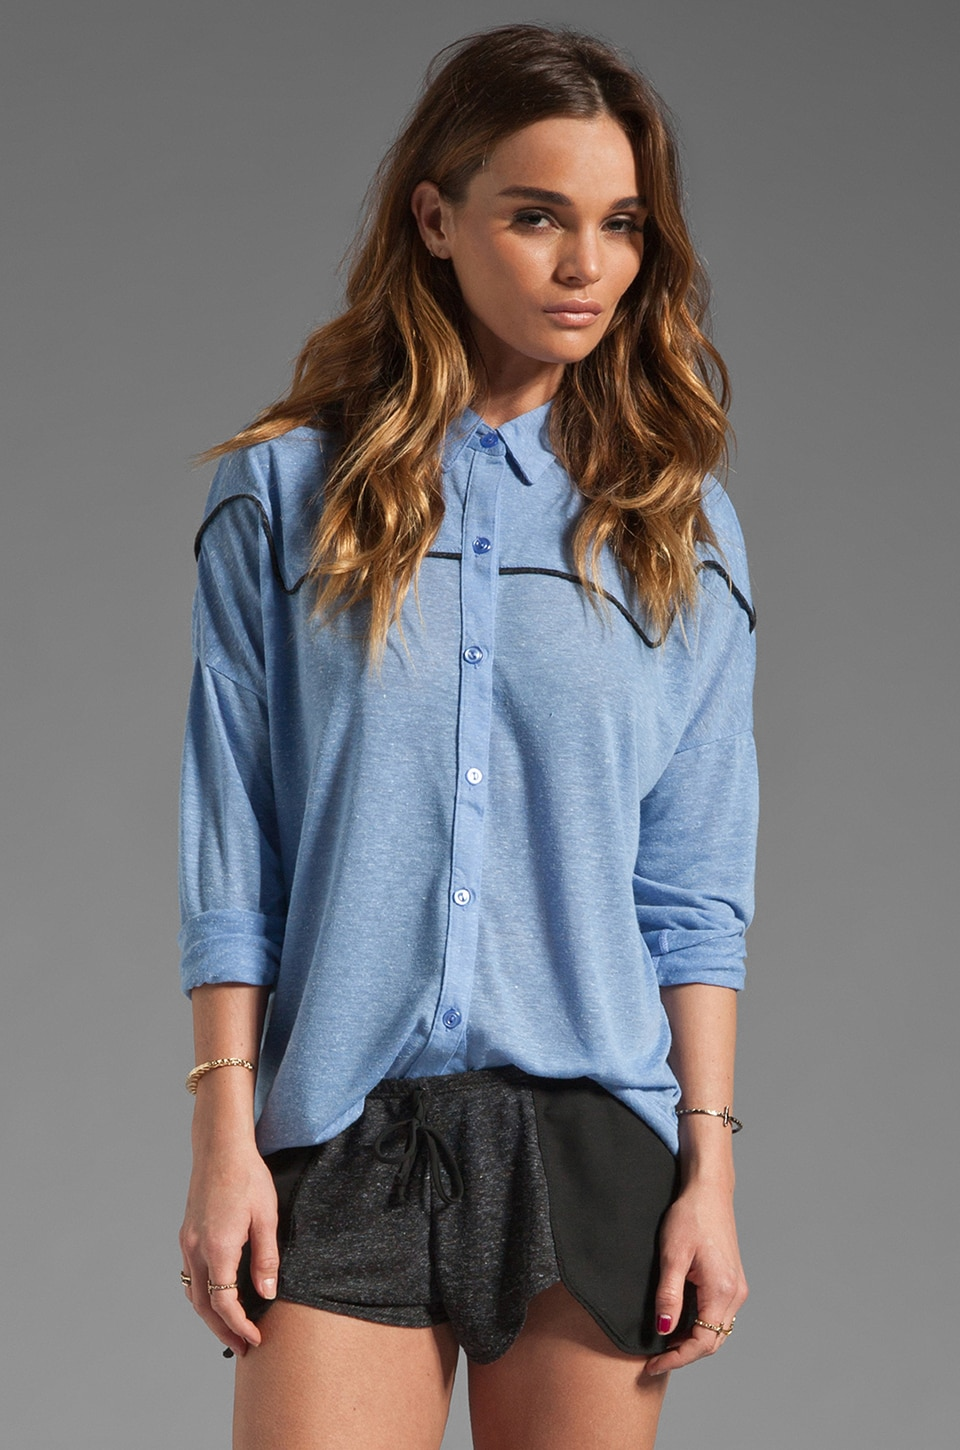 LNA Normandy Shirt in Pacific Blue